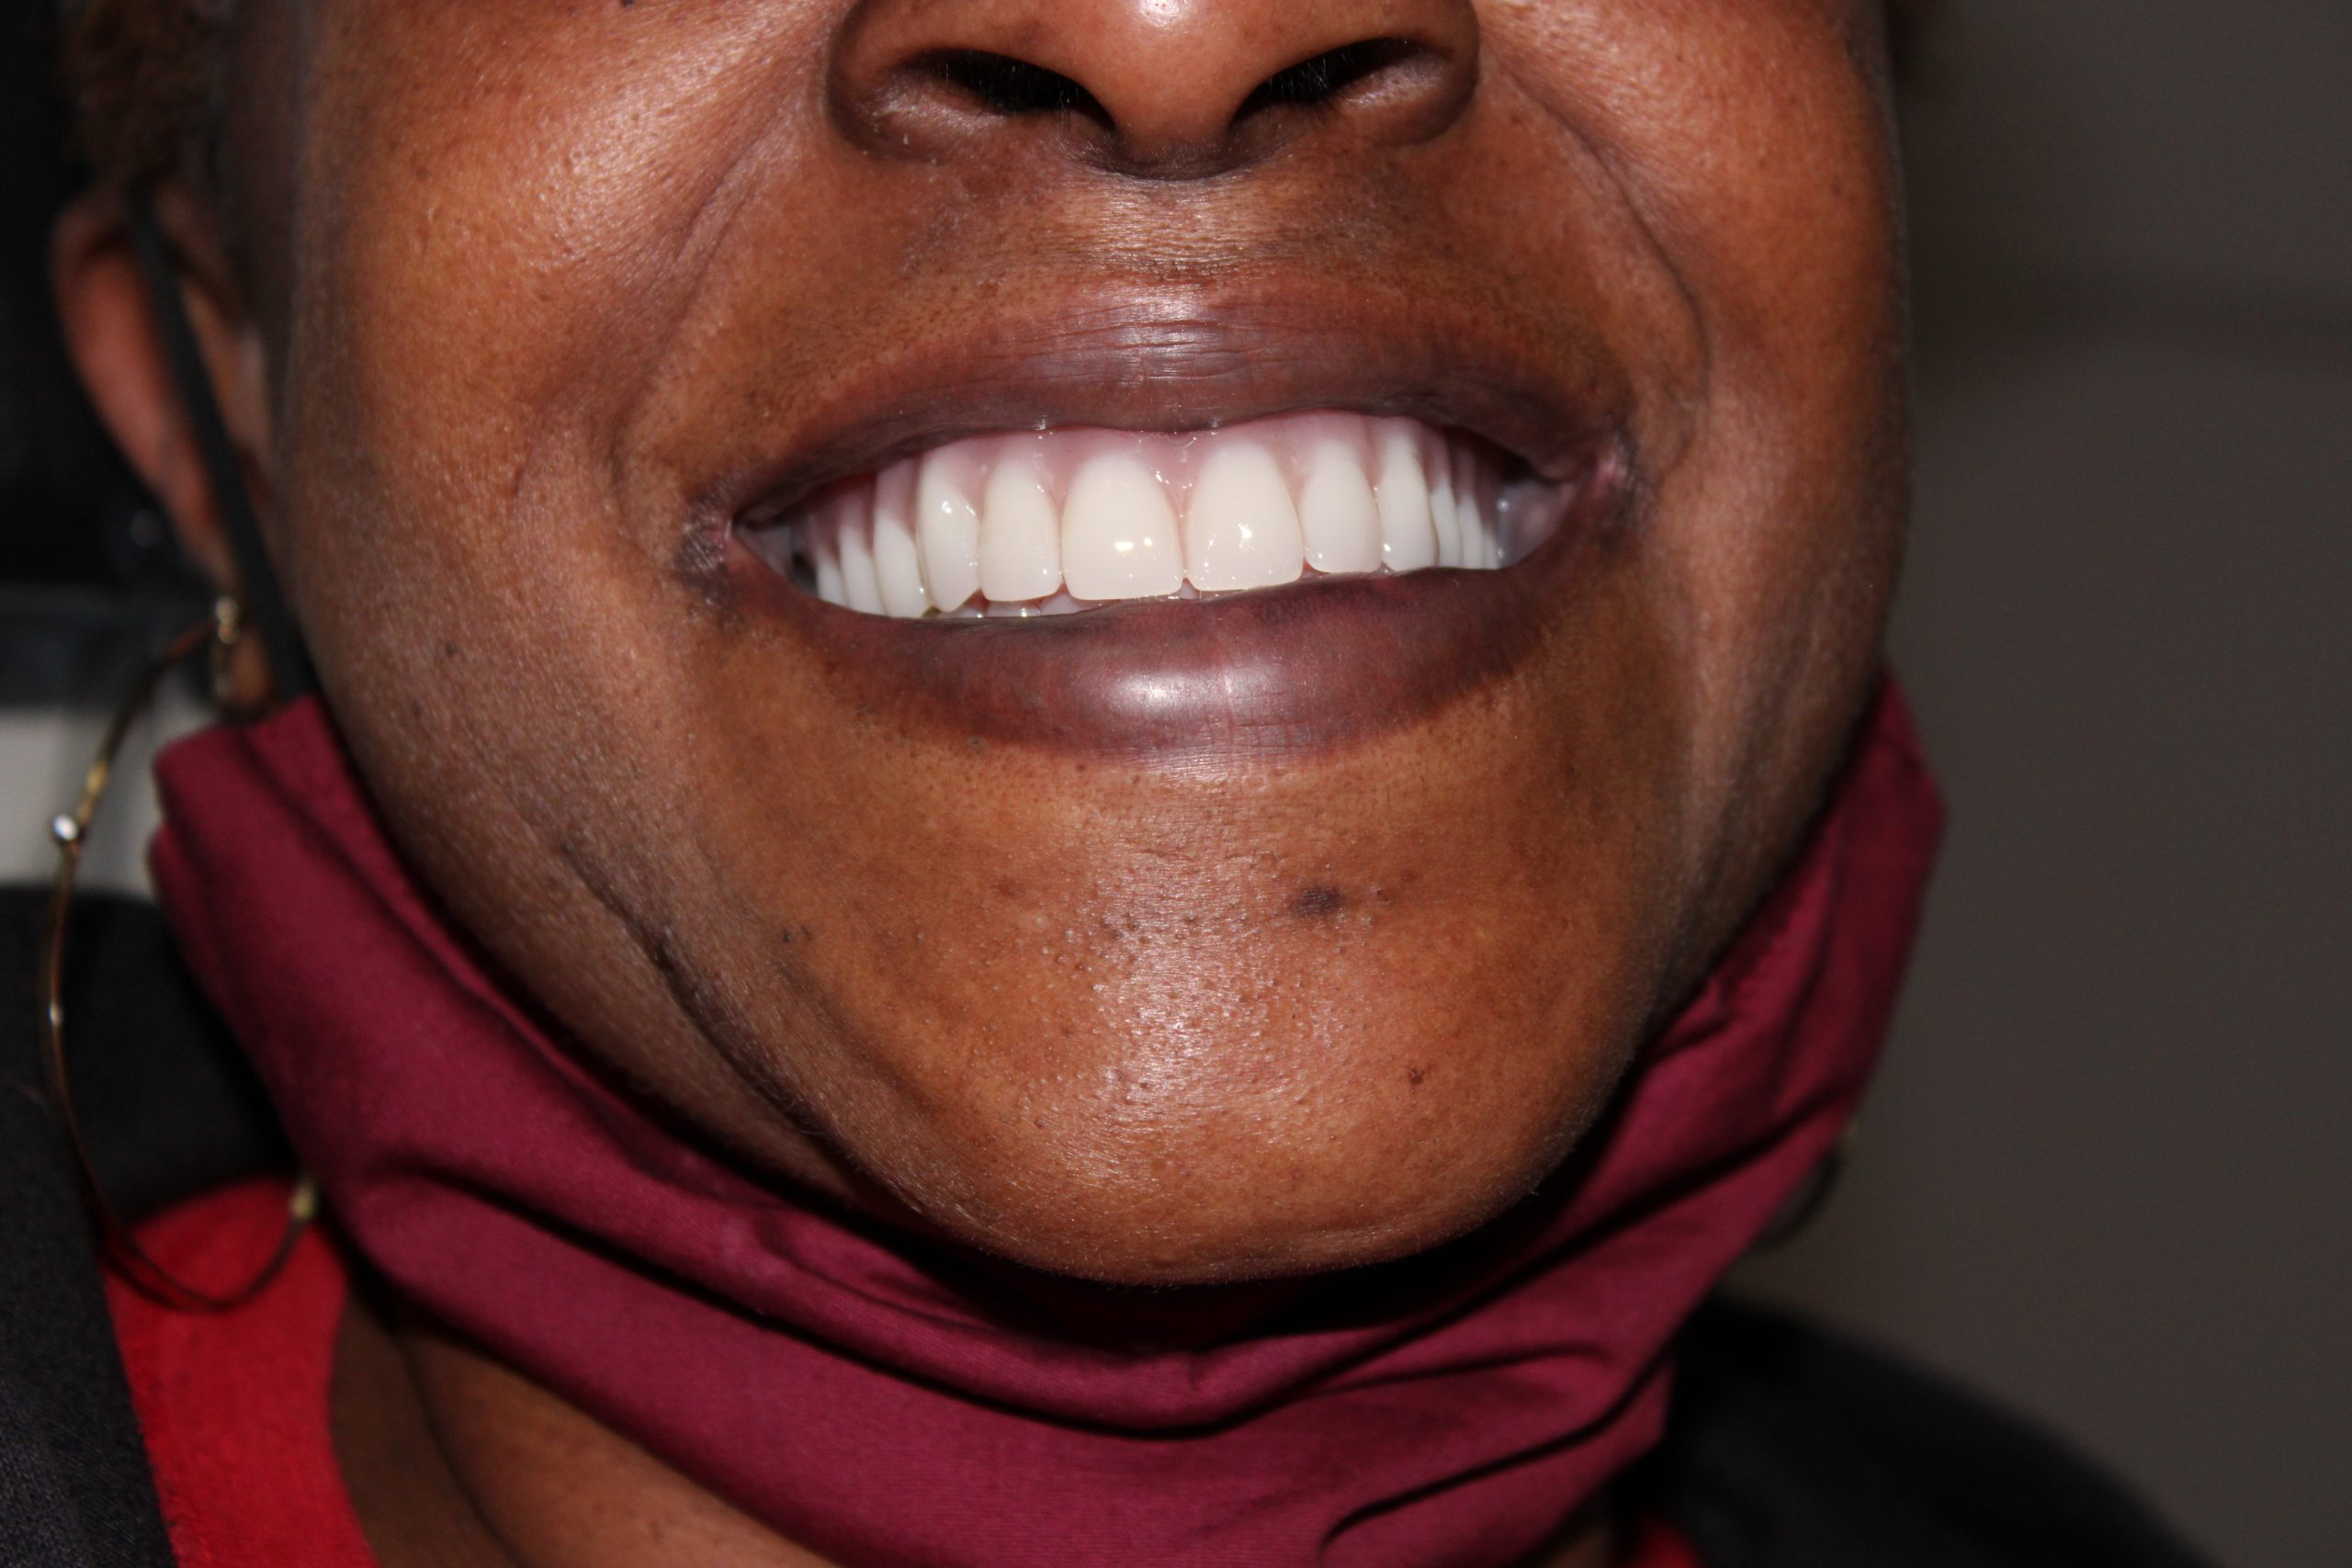 full mouth reconstruction with dental implants